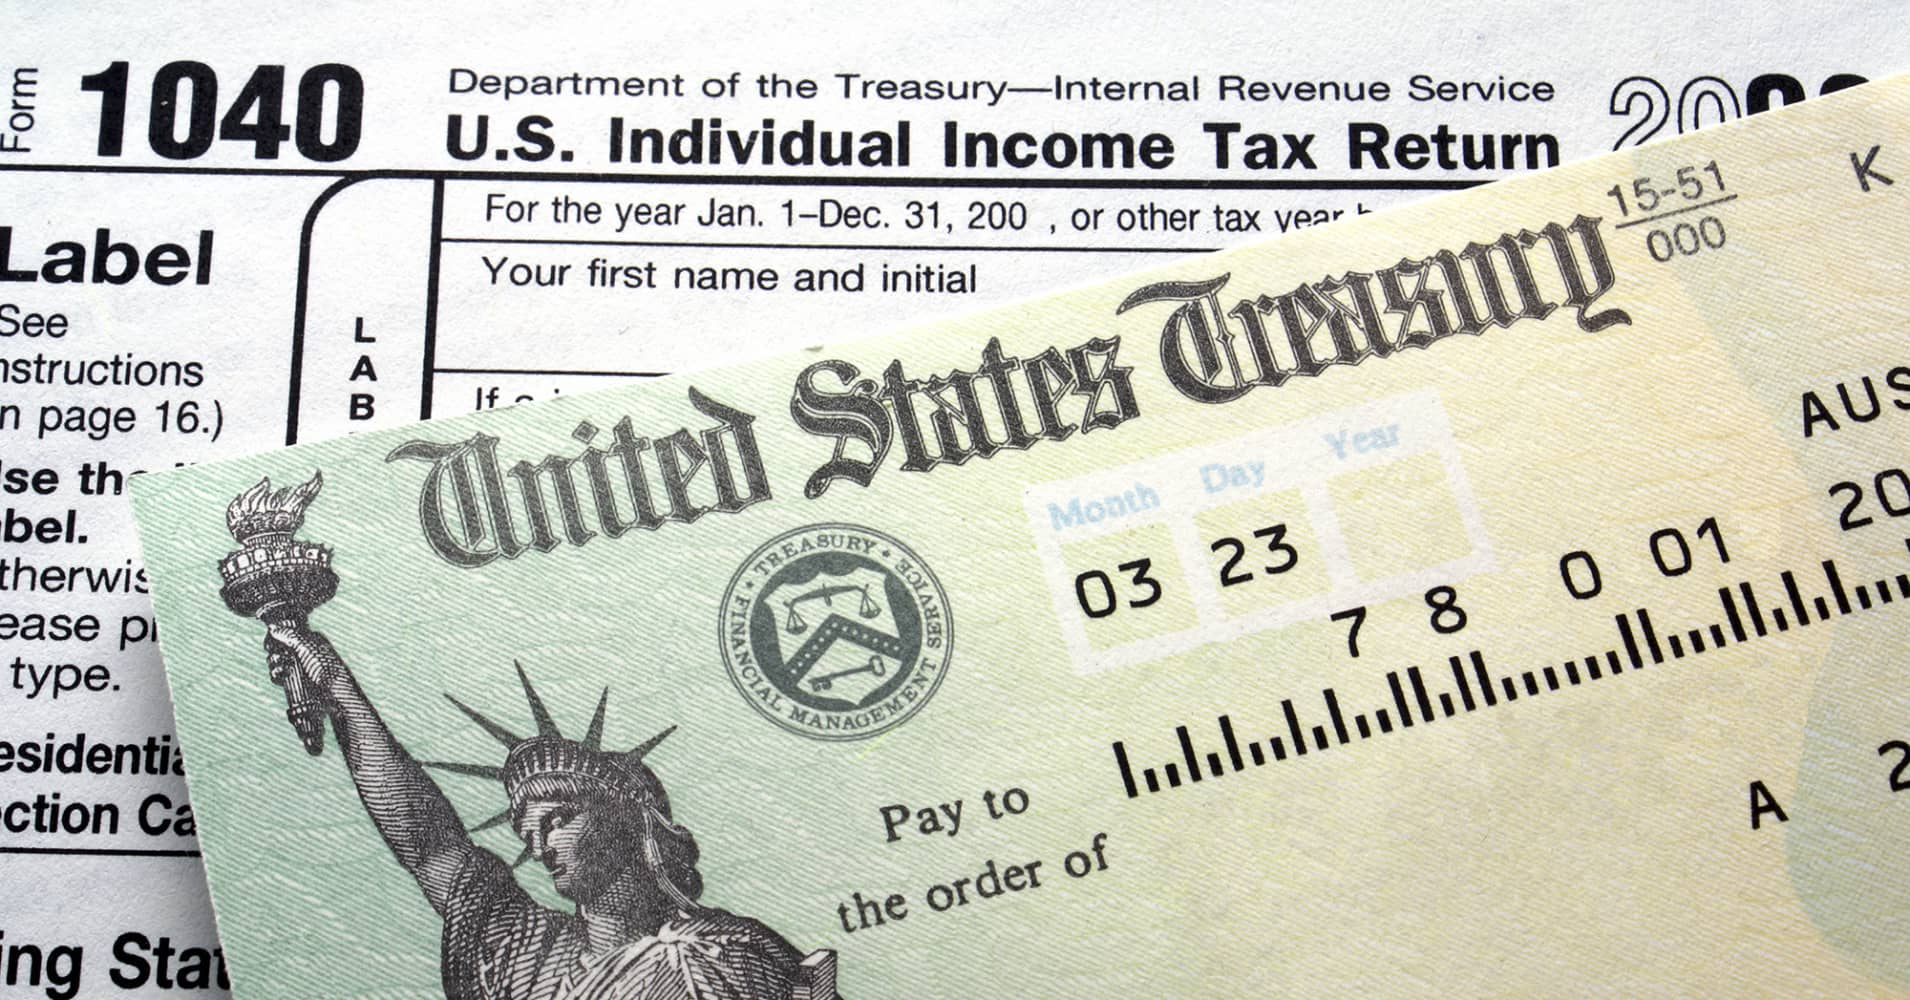 Taxpayers are leaving $1.4 billion in tax refunds on the table